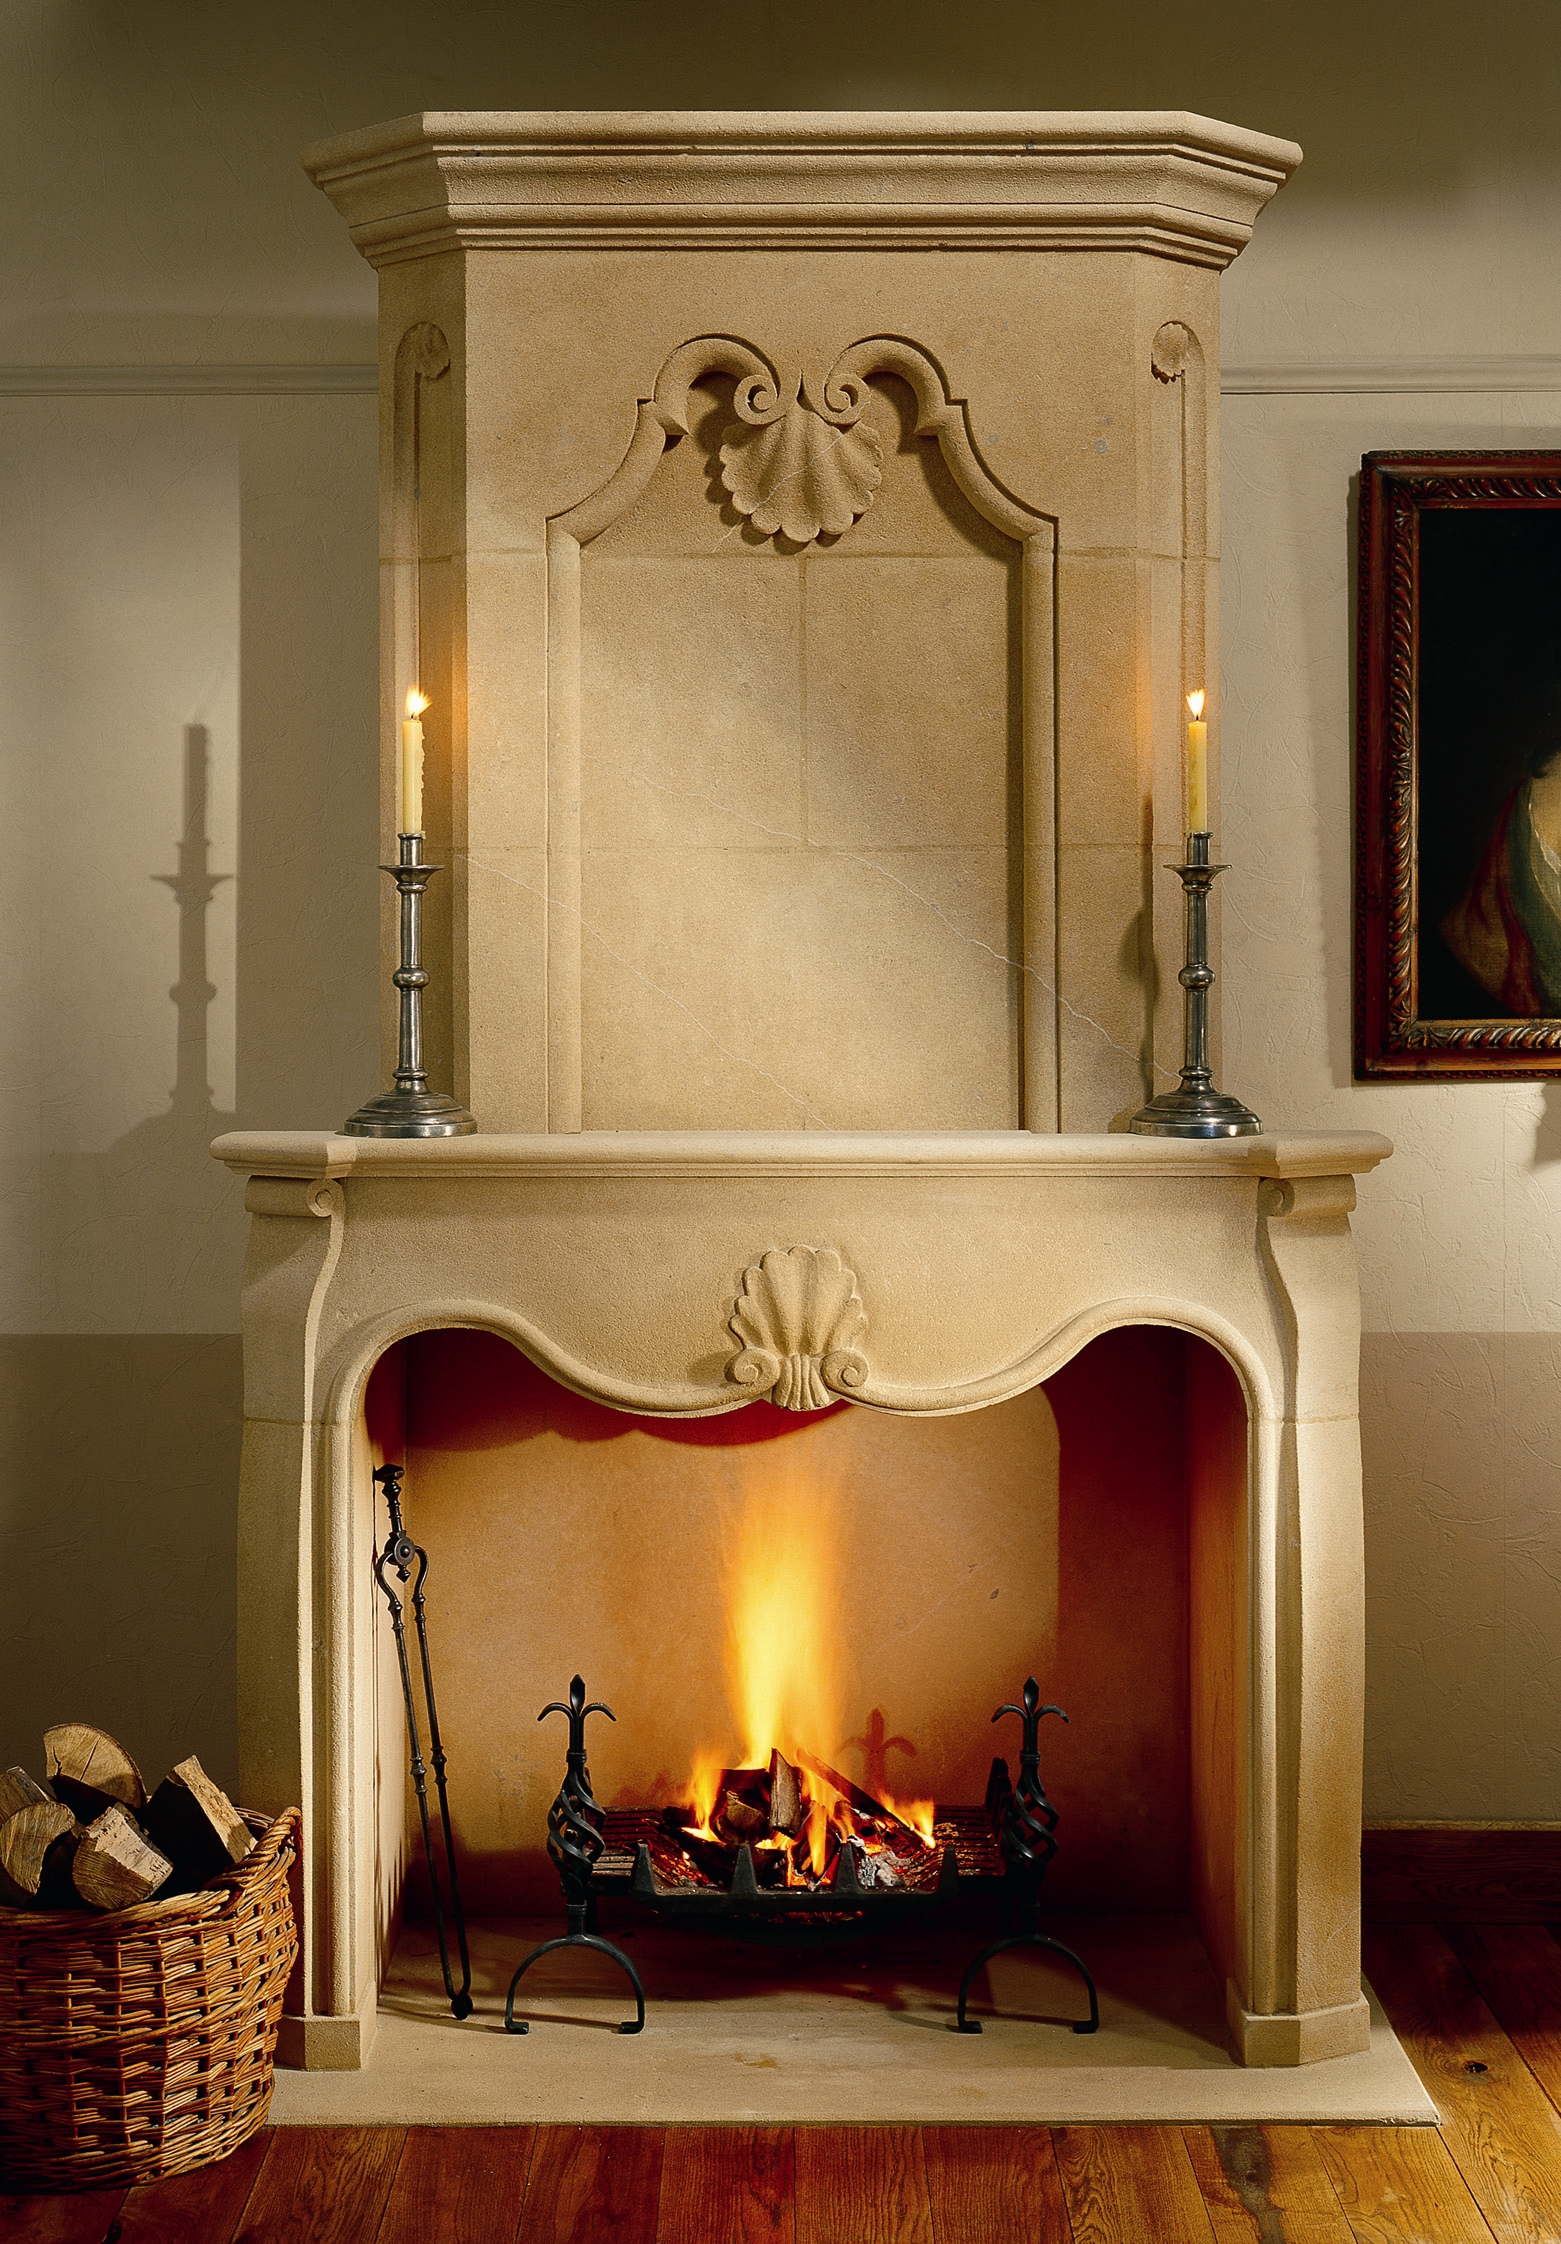 14. French Louis style fireplace and chimney piece in Bathstone – Hampshire